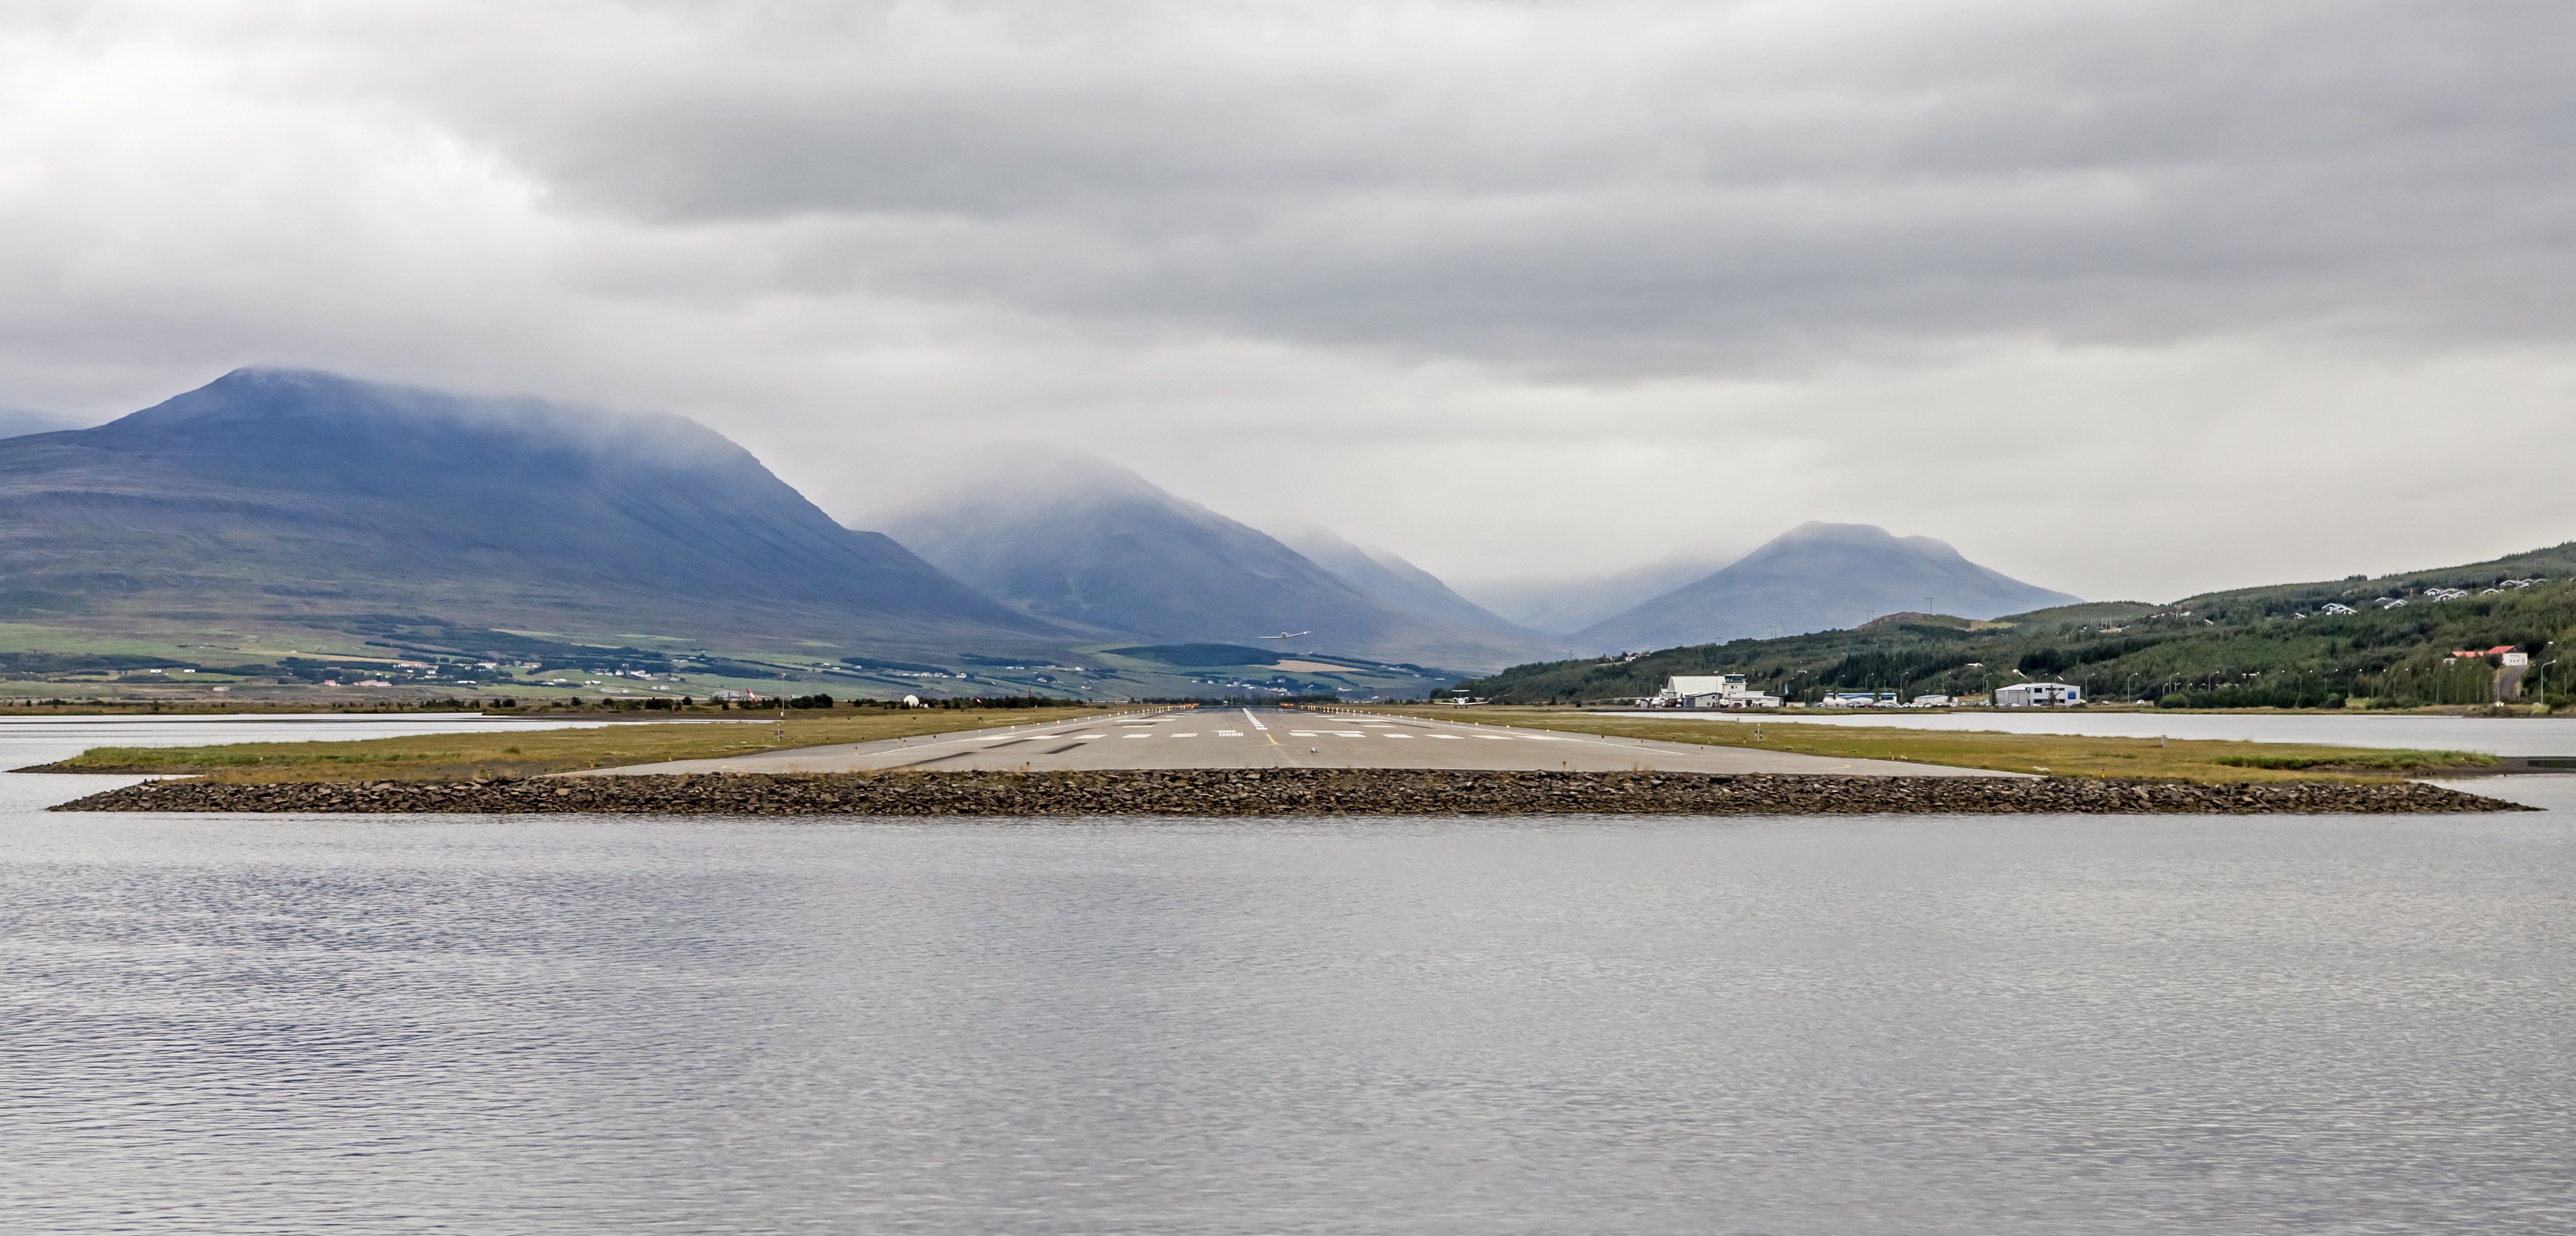 Iceland travel association weighs sending some low-fare airlines to Akureyri instead of Keflavik